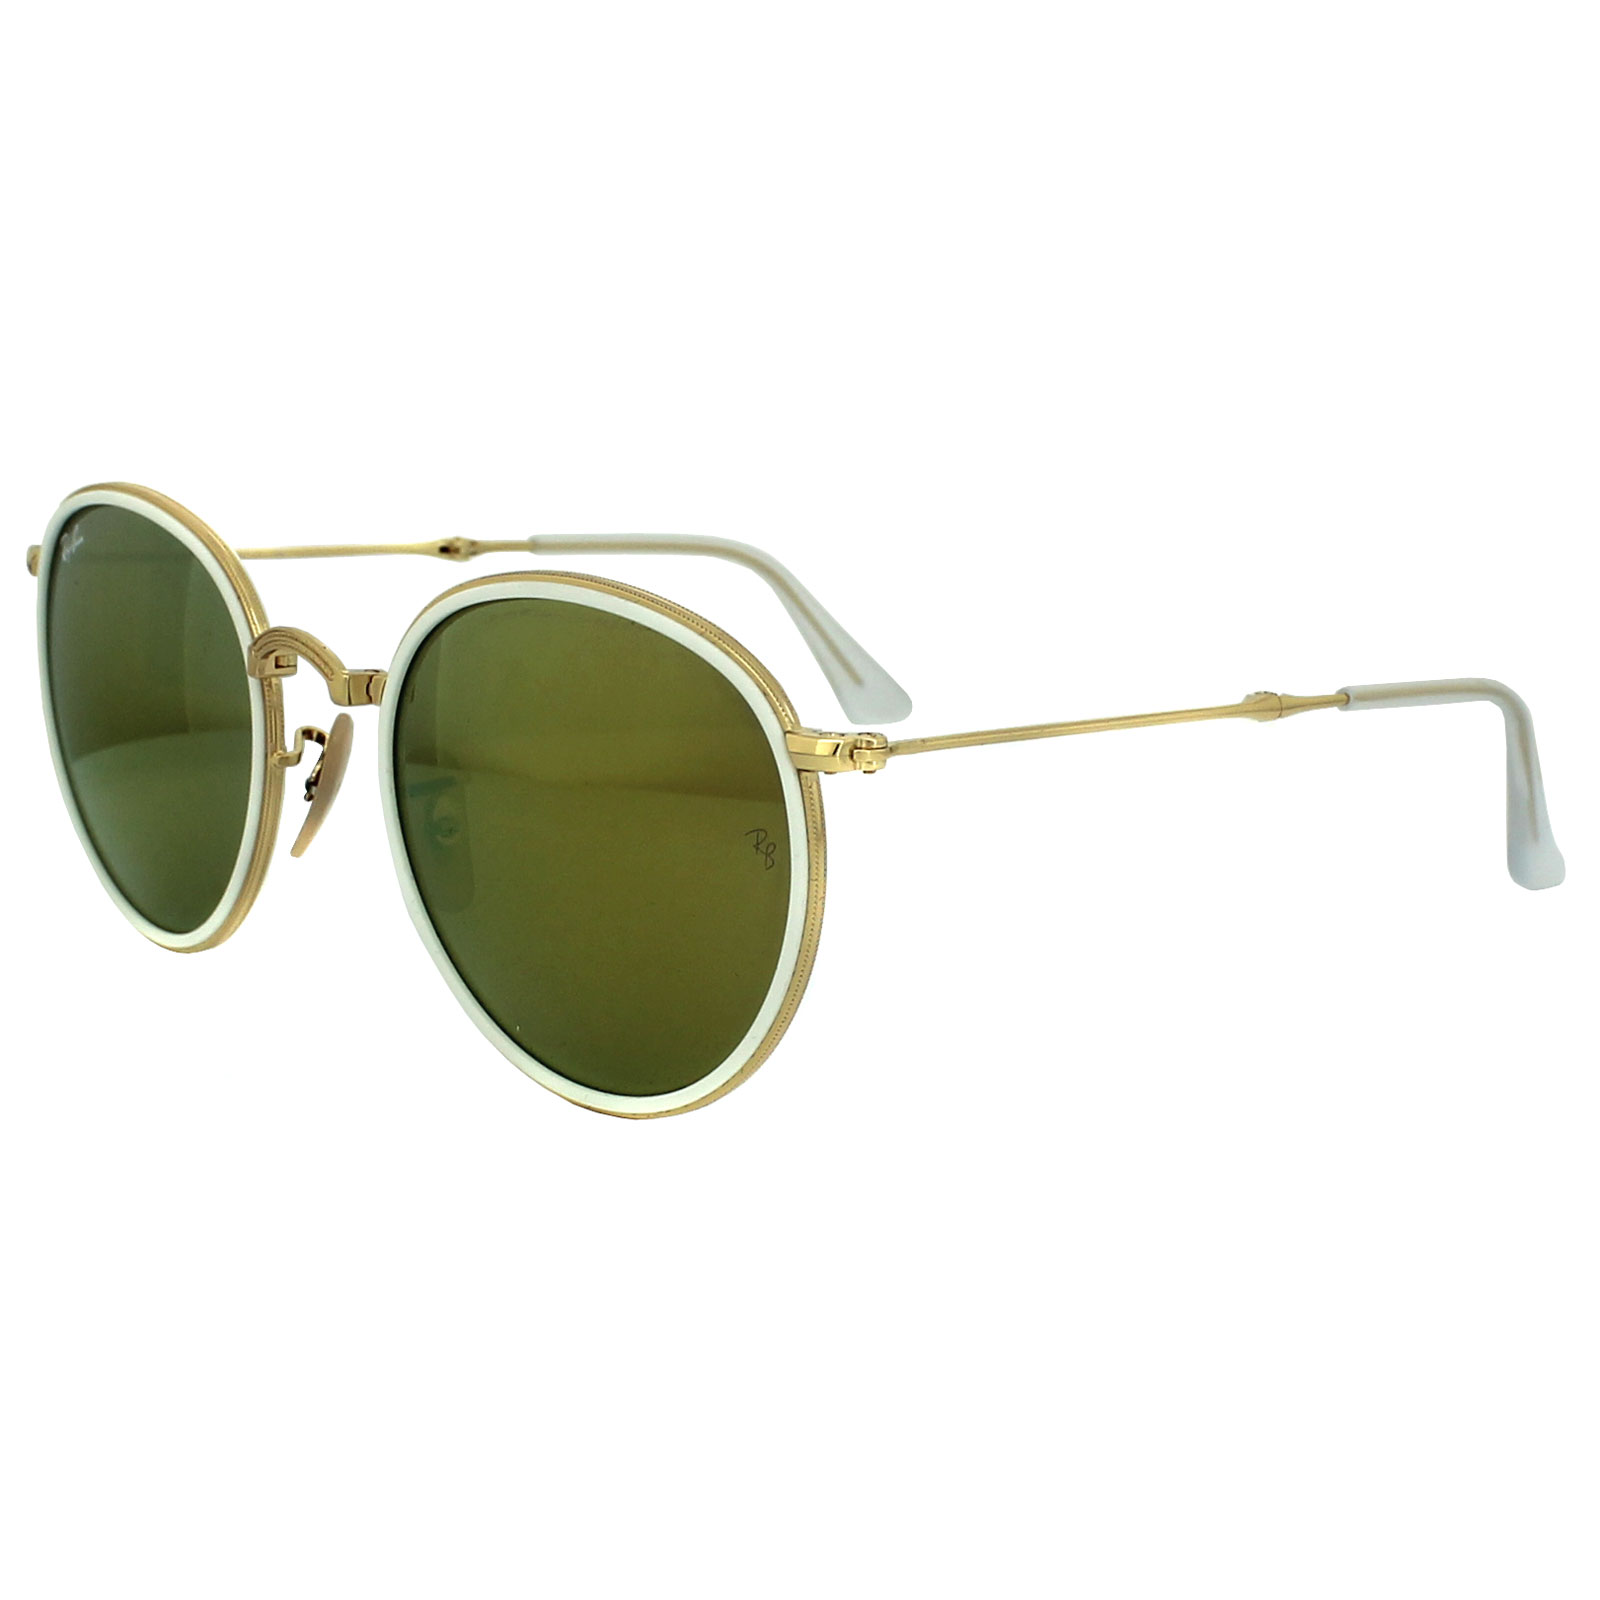 Sentinel Ray-Ban Sunglasses Round Folding 3517 001 93 Gold   White Yellow  Mirror 113928ec68